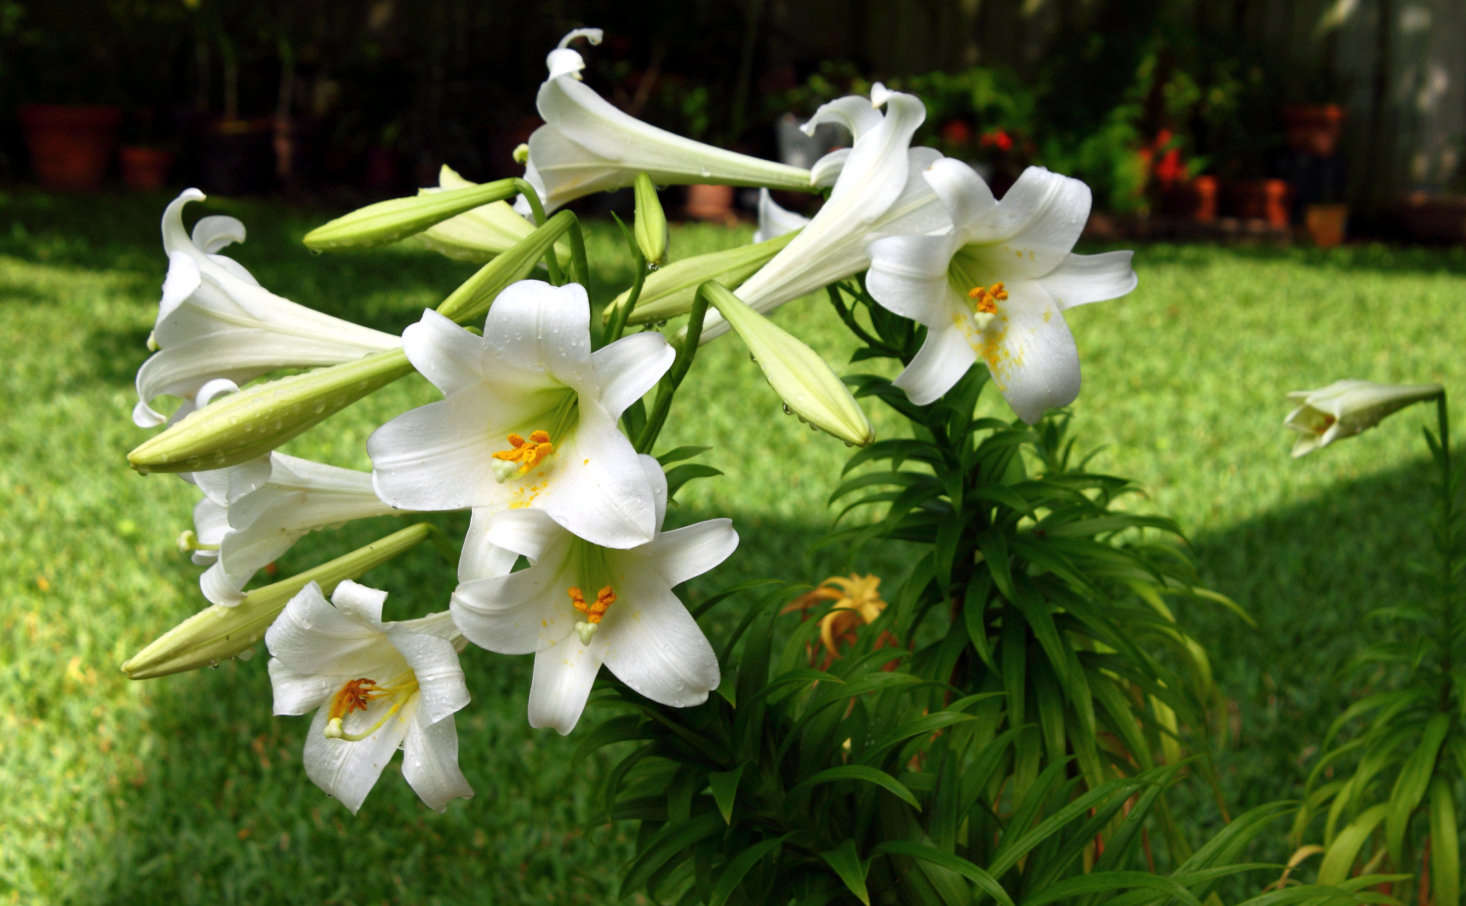 Lilium longiflorum is commonly known as the Easter lily. Photograph by A. Yee via Flickr.